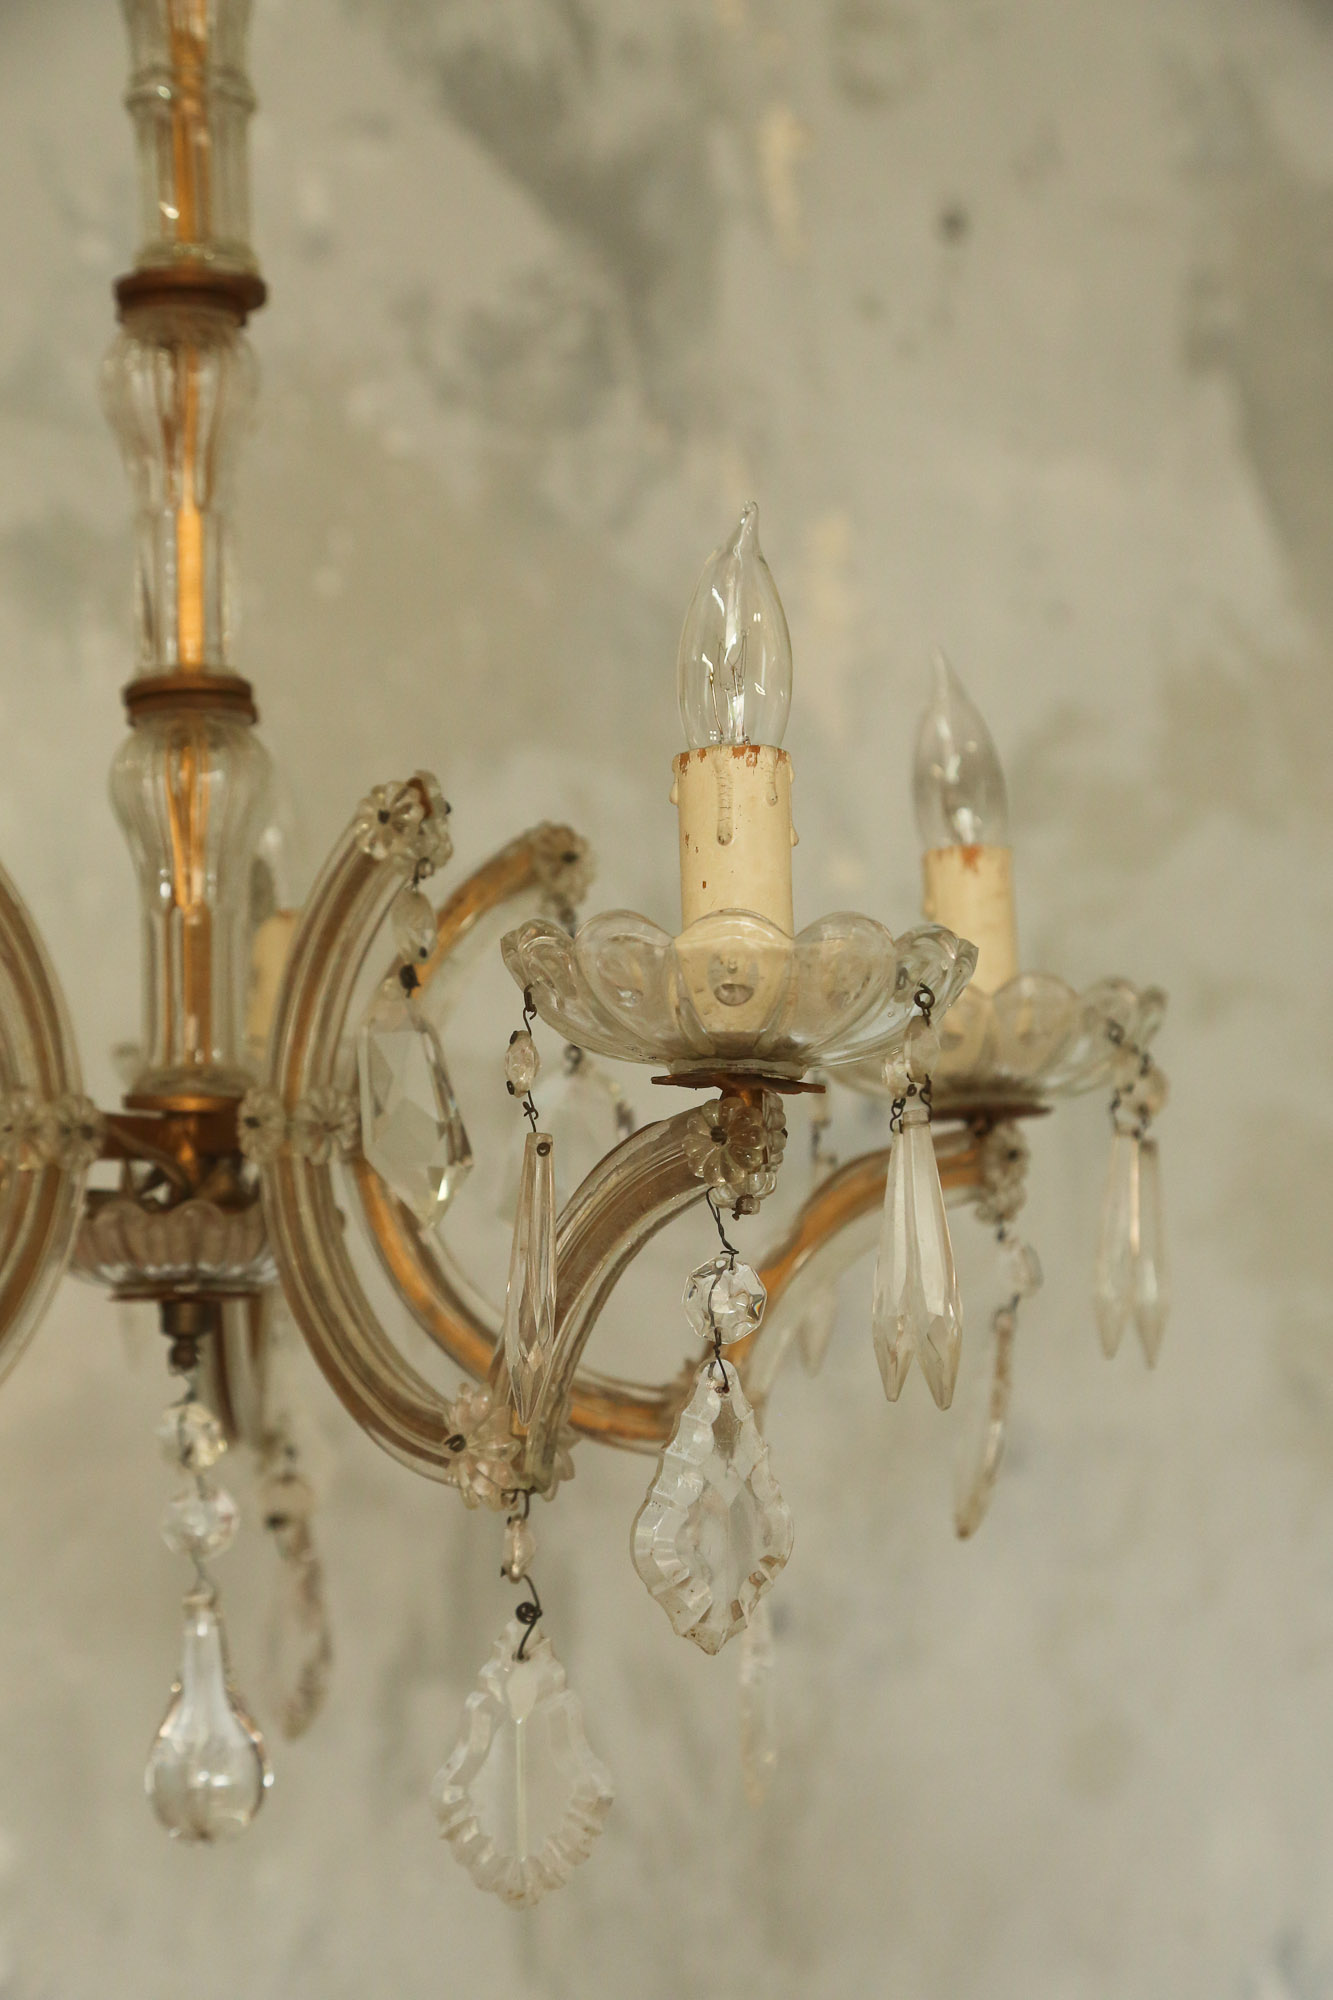 Chandelier Antique Venetian  France early 1900's.jpg